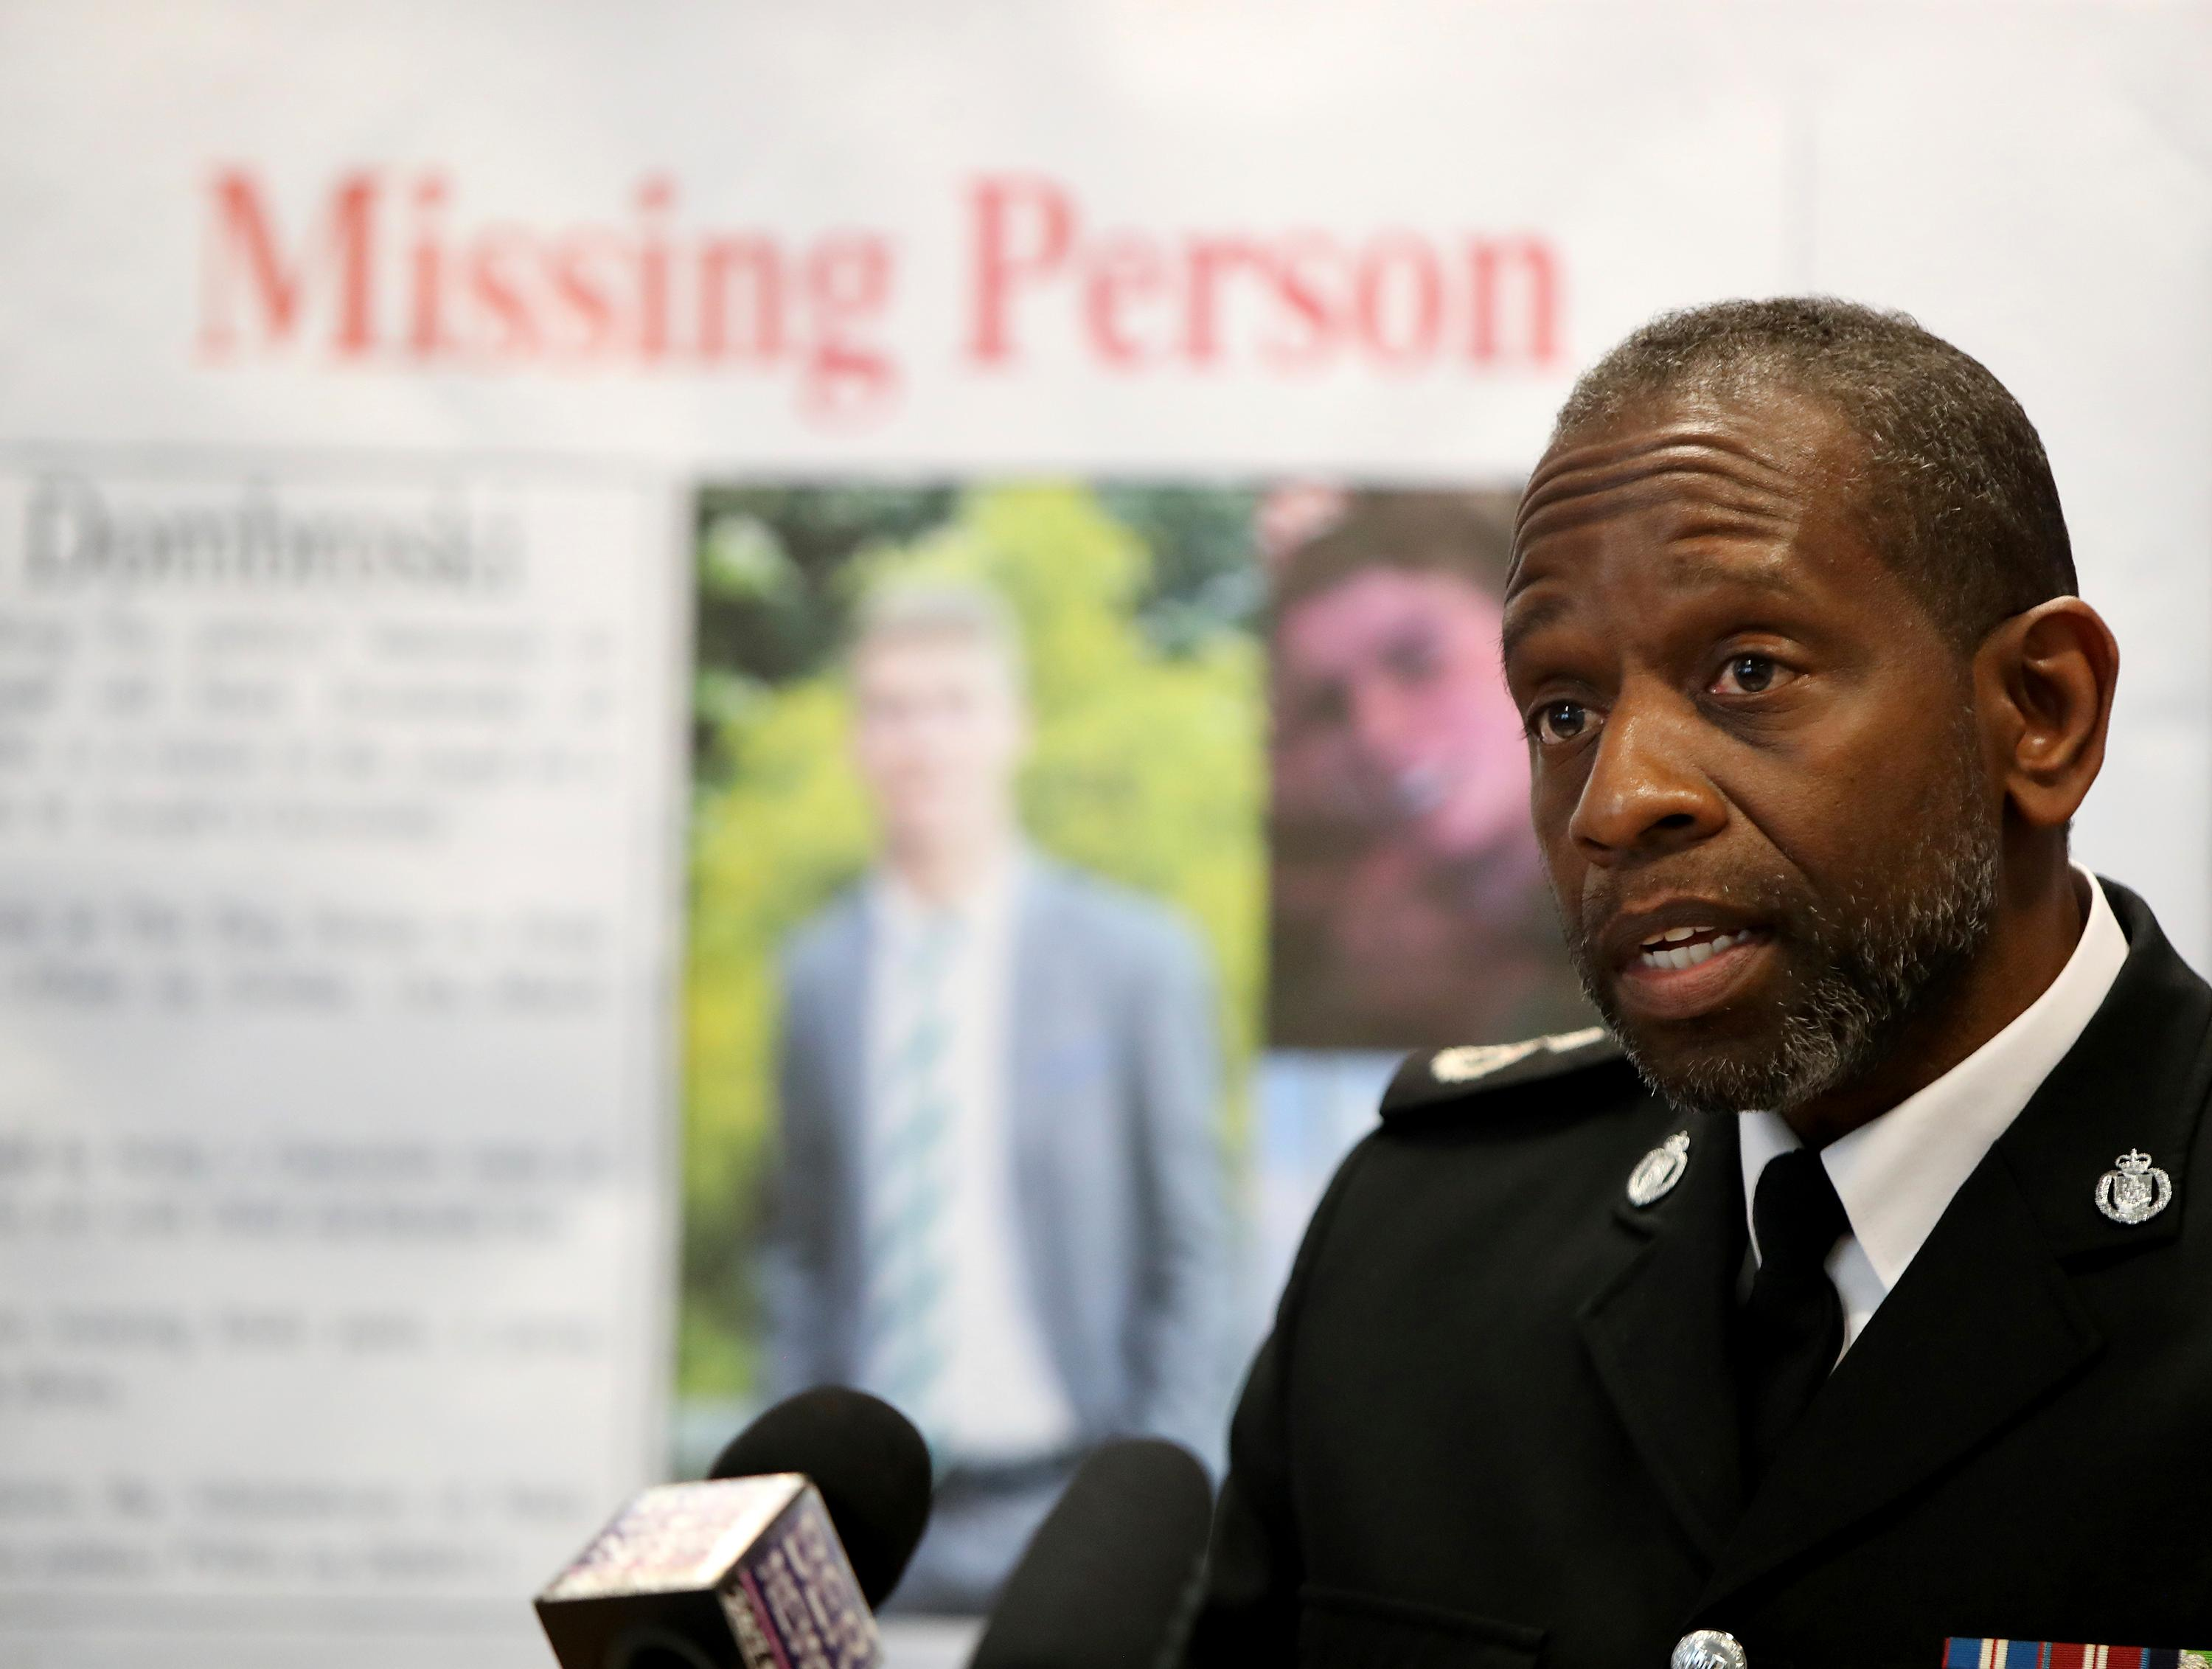 James Howard, acting Assistant Police Commissioner of Bermuda Police Services, gives a press conference regarding missing American college  student Mark Dombroski at the Hamilton Police Station in Hamilton, Bermuda, Monday, March 19, 2018. Dombroski, 19, a member of the rugby team at Saint Joseph's University in Philadelphia, disappeared early Sunday after a night of socializing at the end of an international rugby tournament. (Blaire Simmons/The Royal Gazette via AP)